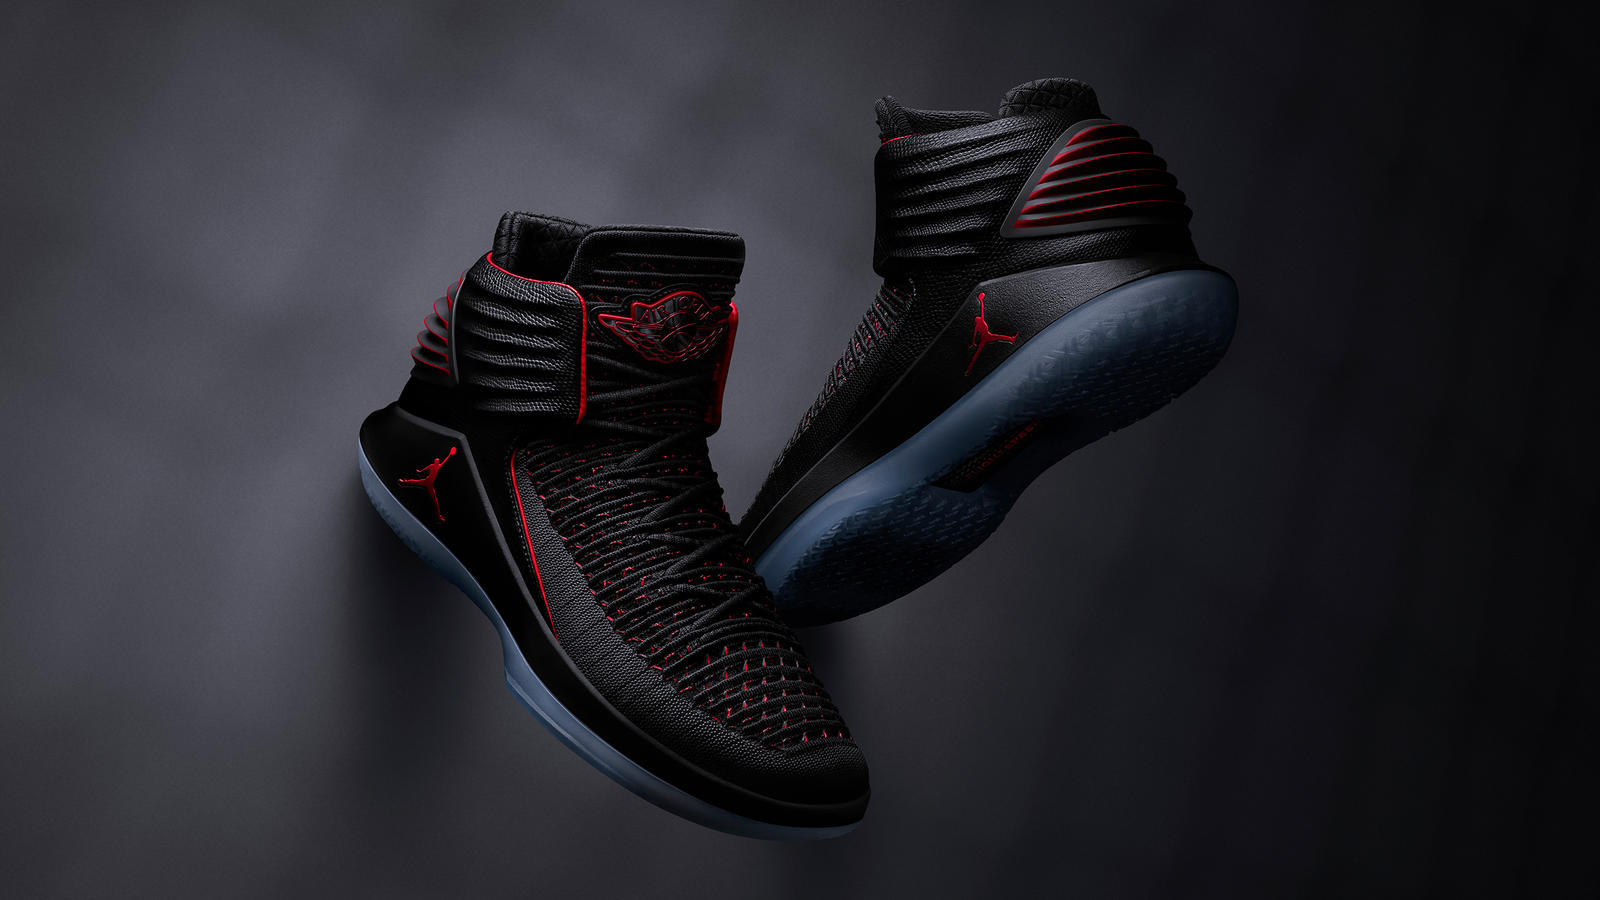 Introducing the Air Jordan XXXII 27